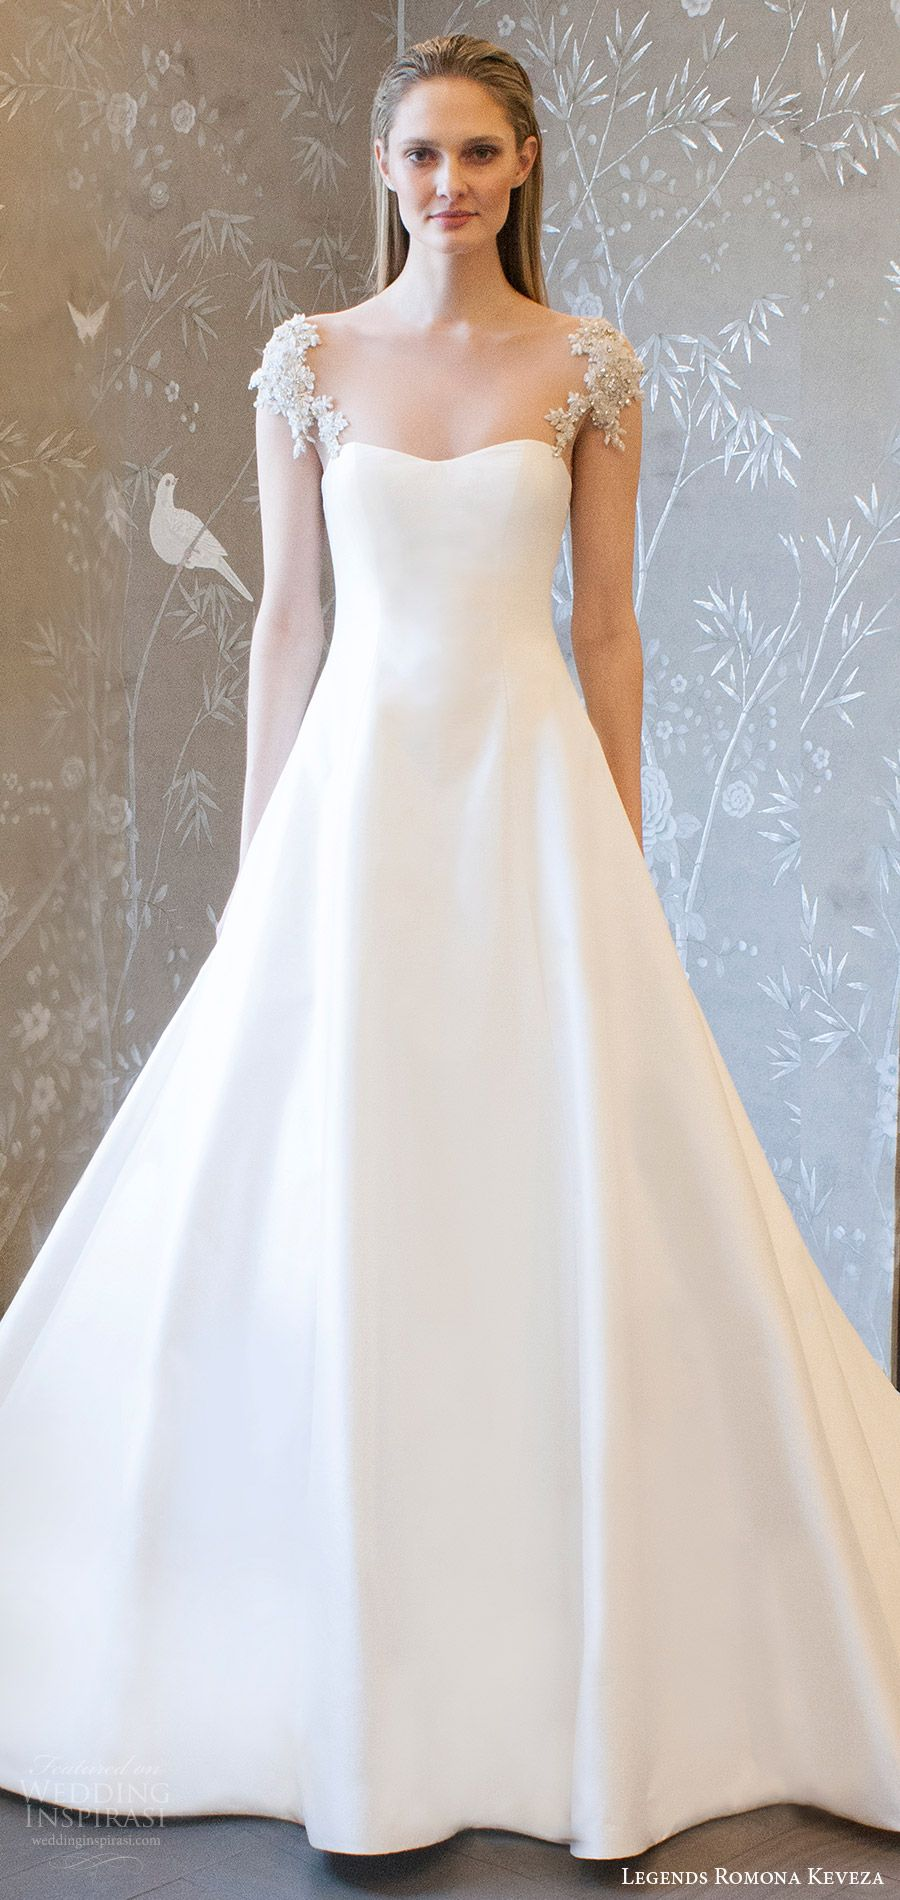 Legends romona keveza spring 2018 wedding dresses wedding dress legends romona keveza spring 2018 wedding dresses ombrellifo Image collections